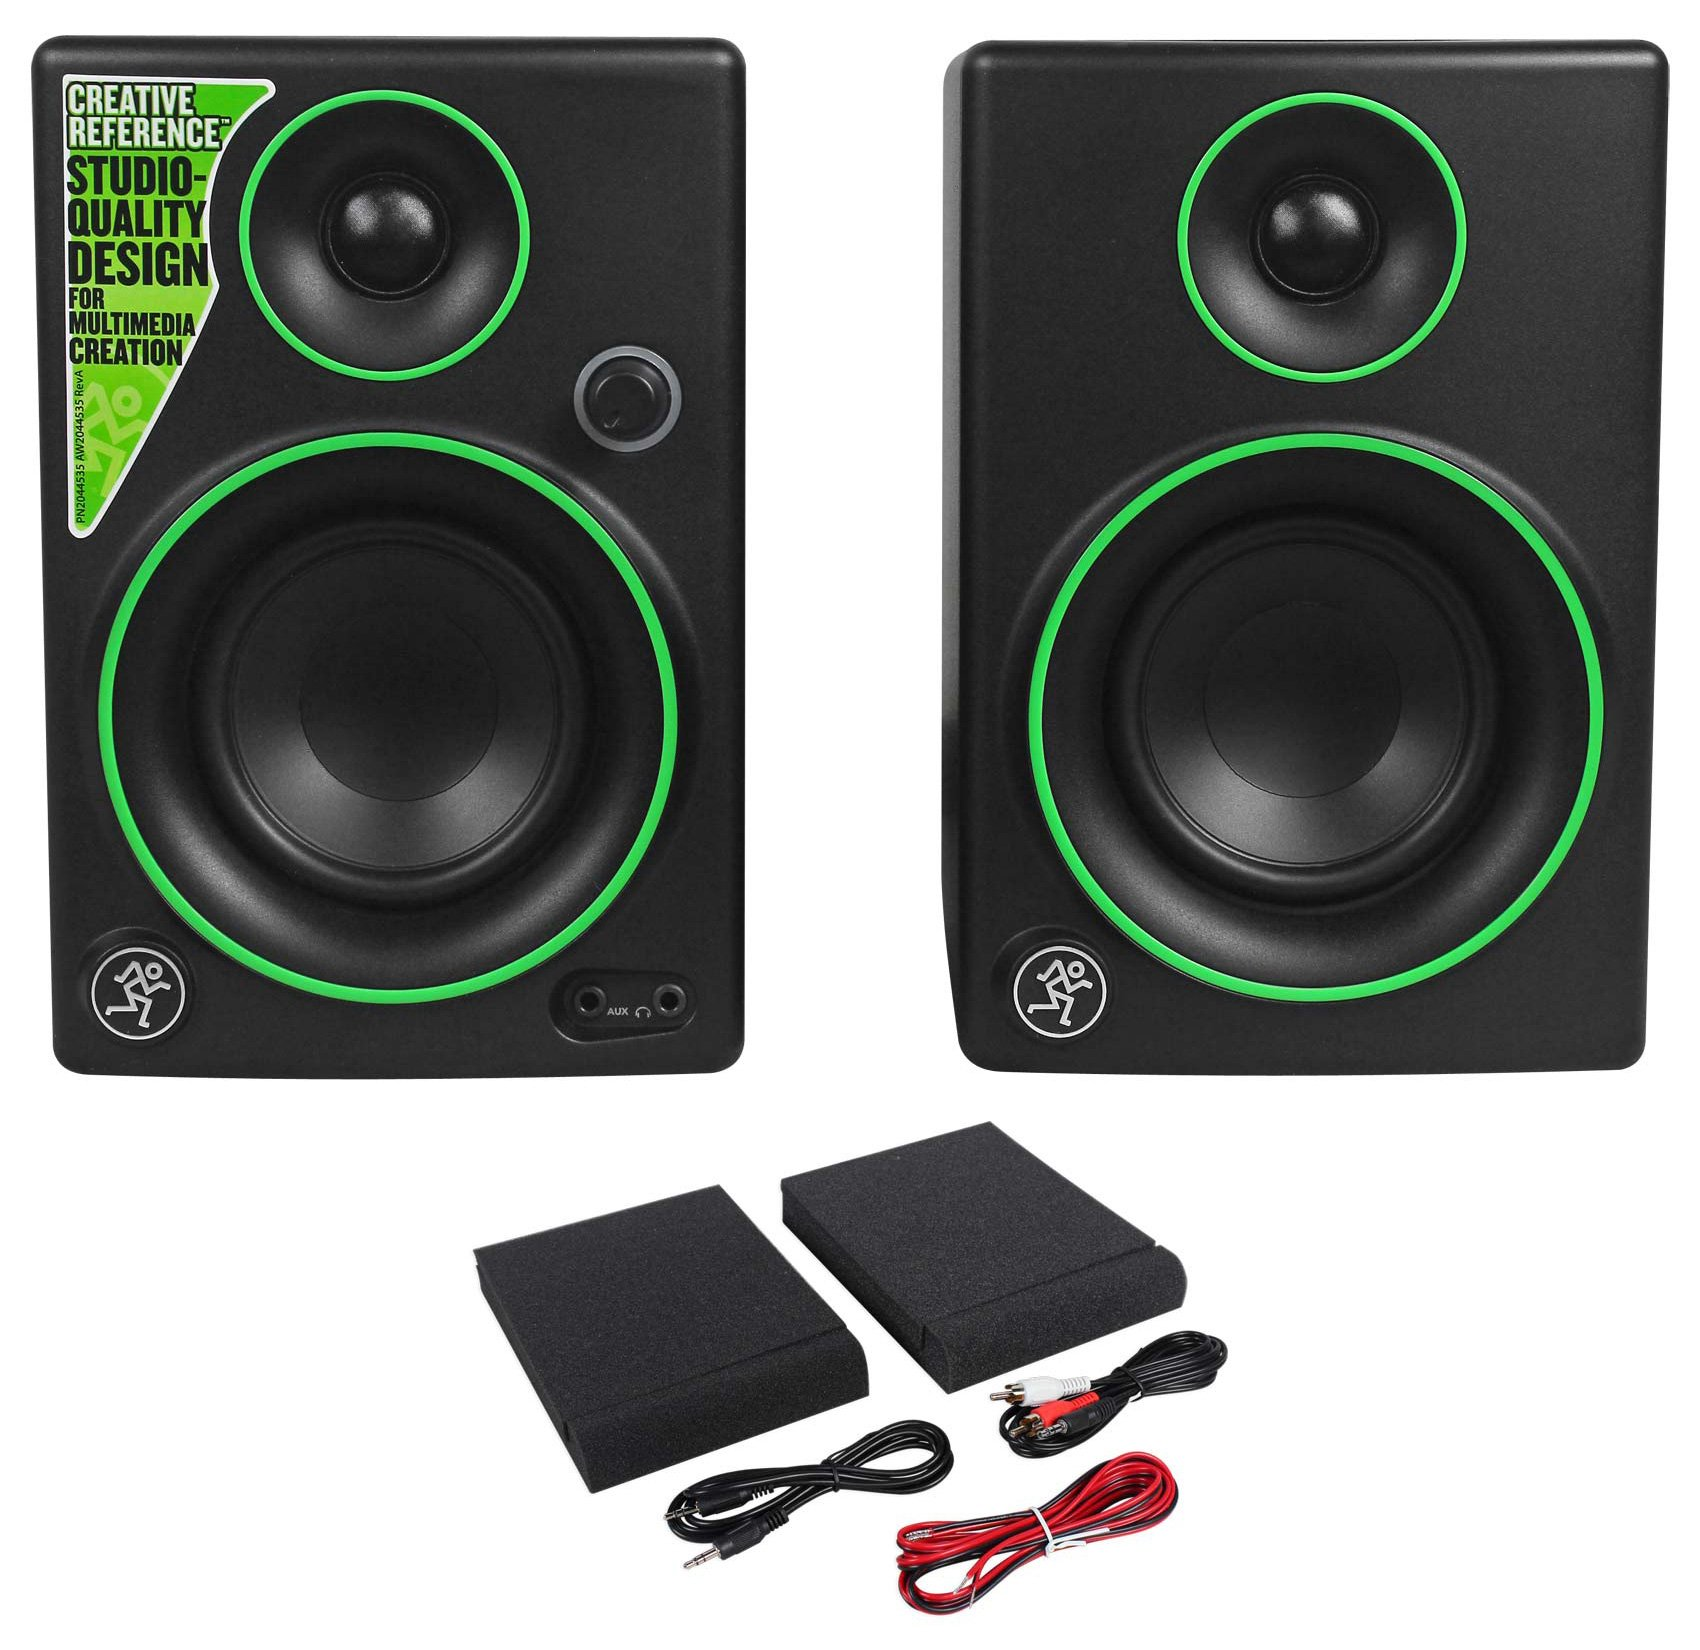 (2) Mackie CR3 3'' Studio/Computer/Podcast Podcasting Reference Monitors Speakers